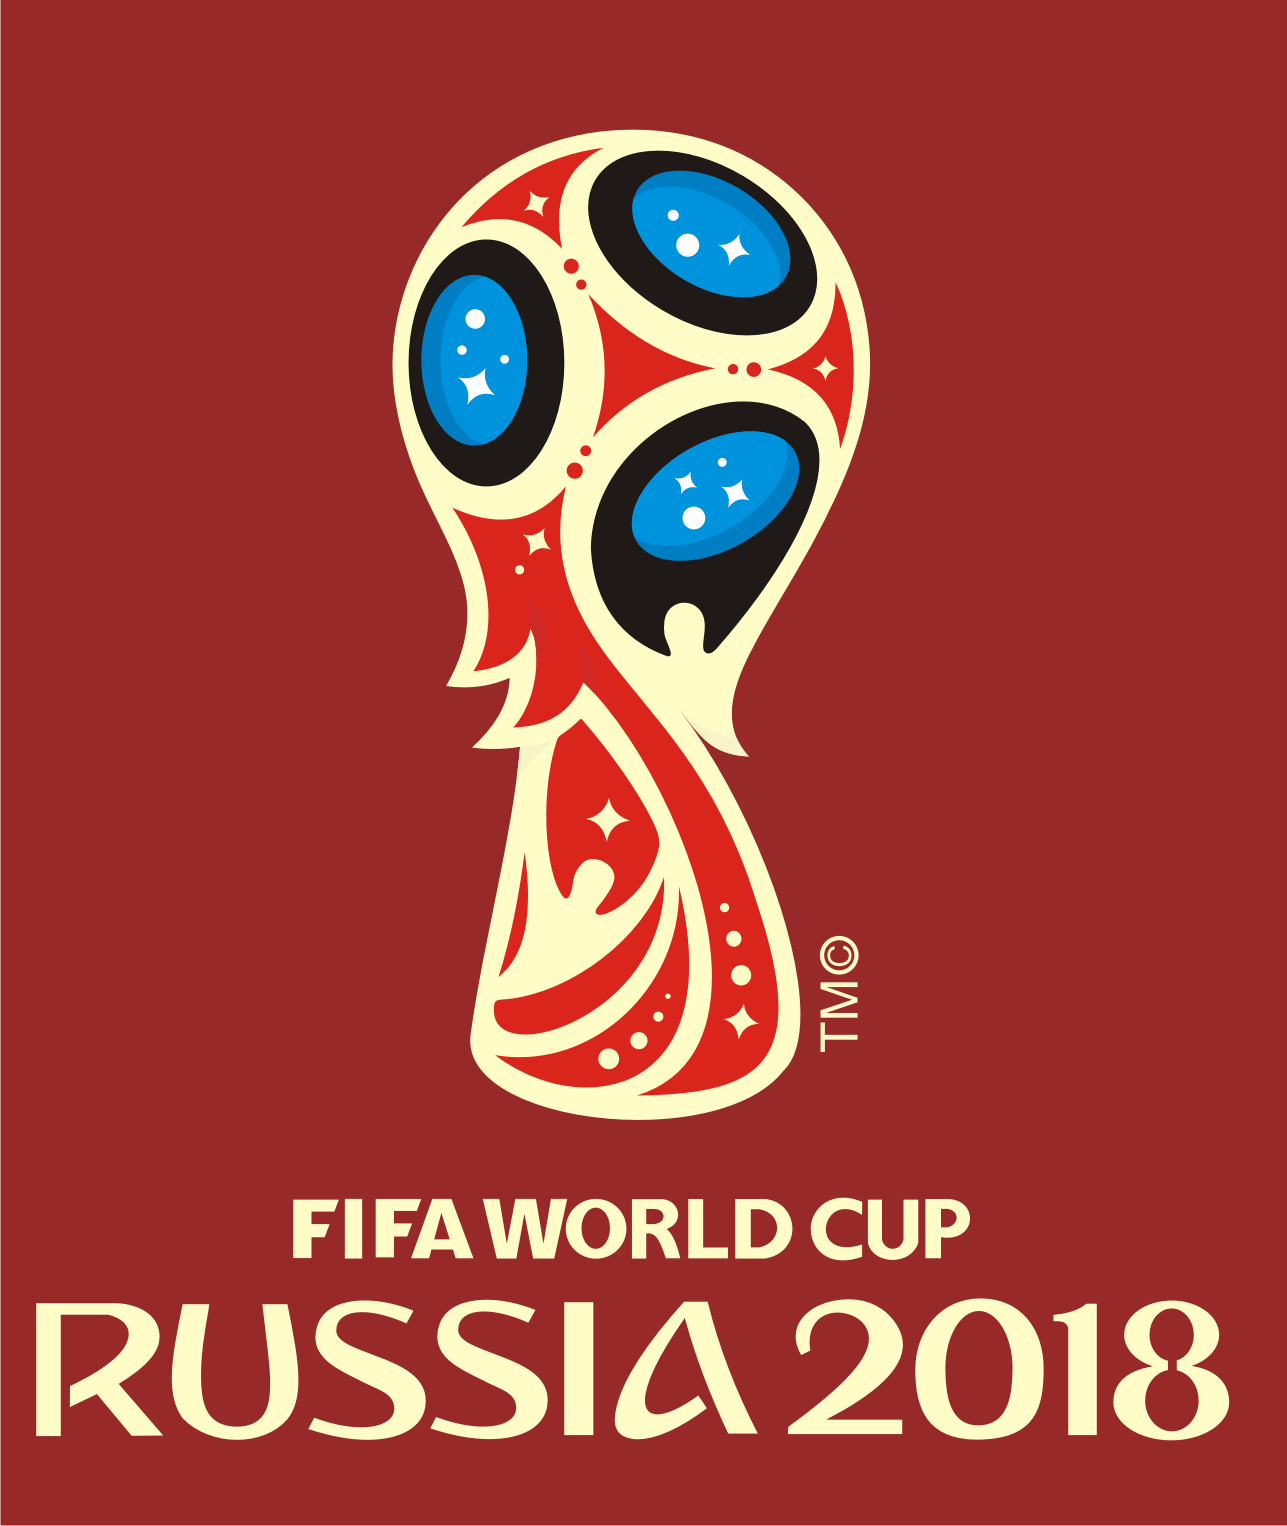 2018 clipart world cup. Logo fifa png russia